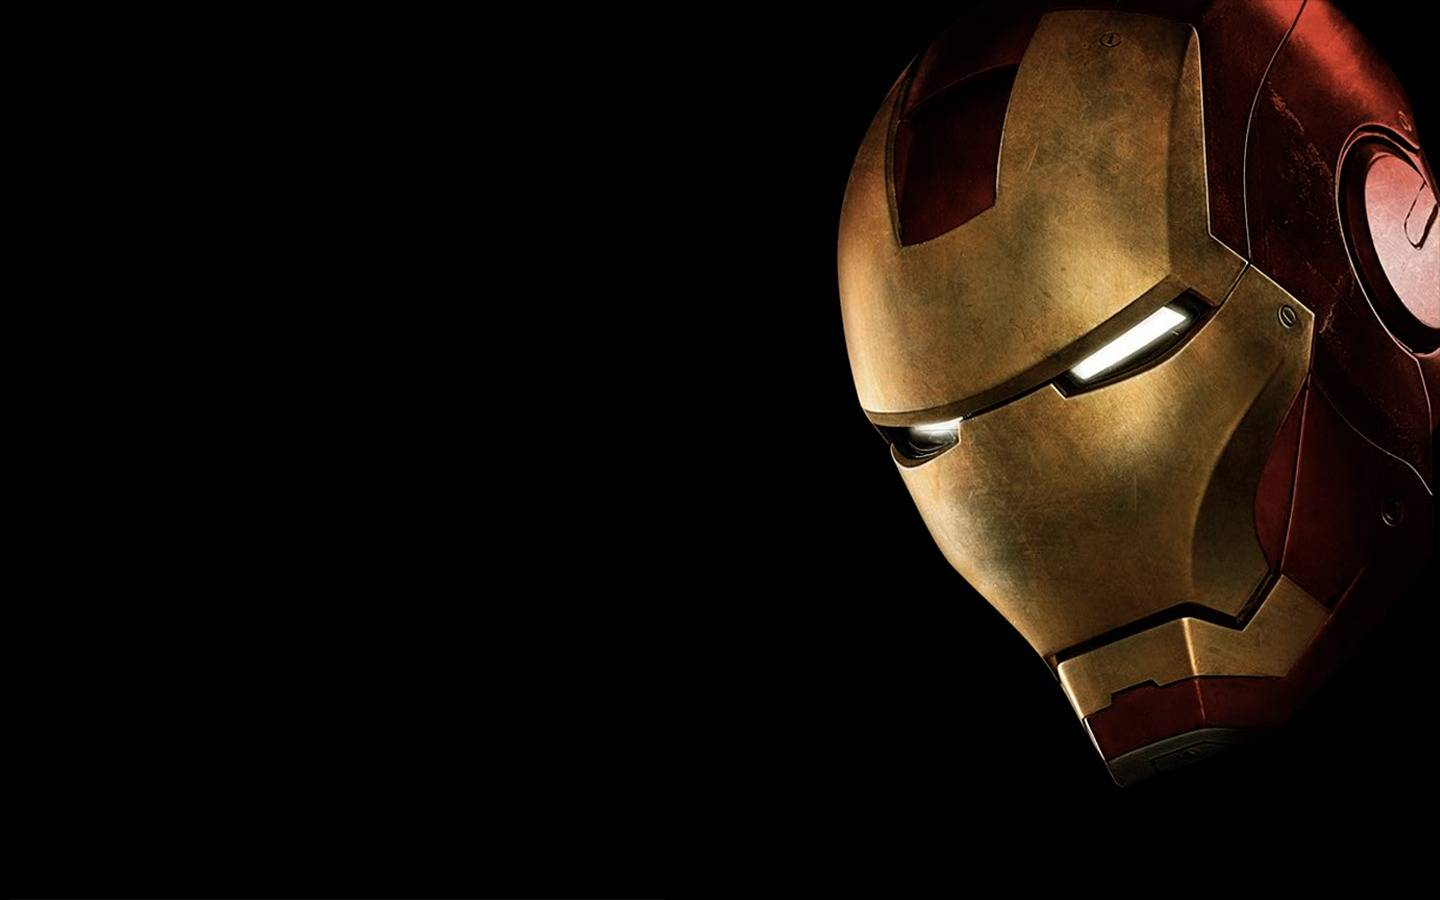 Iron Man Desktop Hd Hd Desktop Wallpaper High Definition Mobile